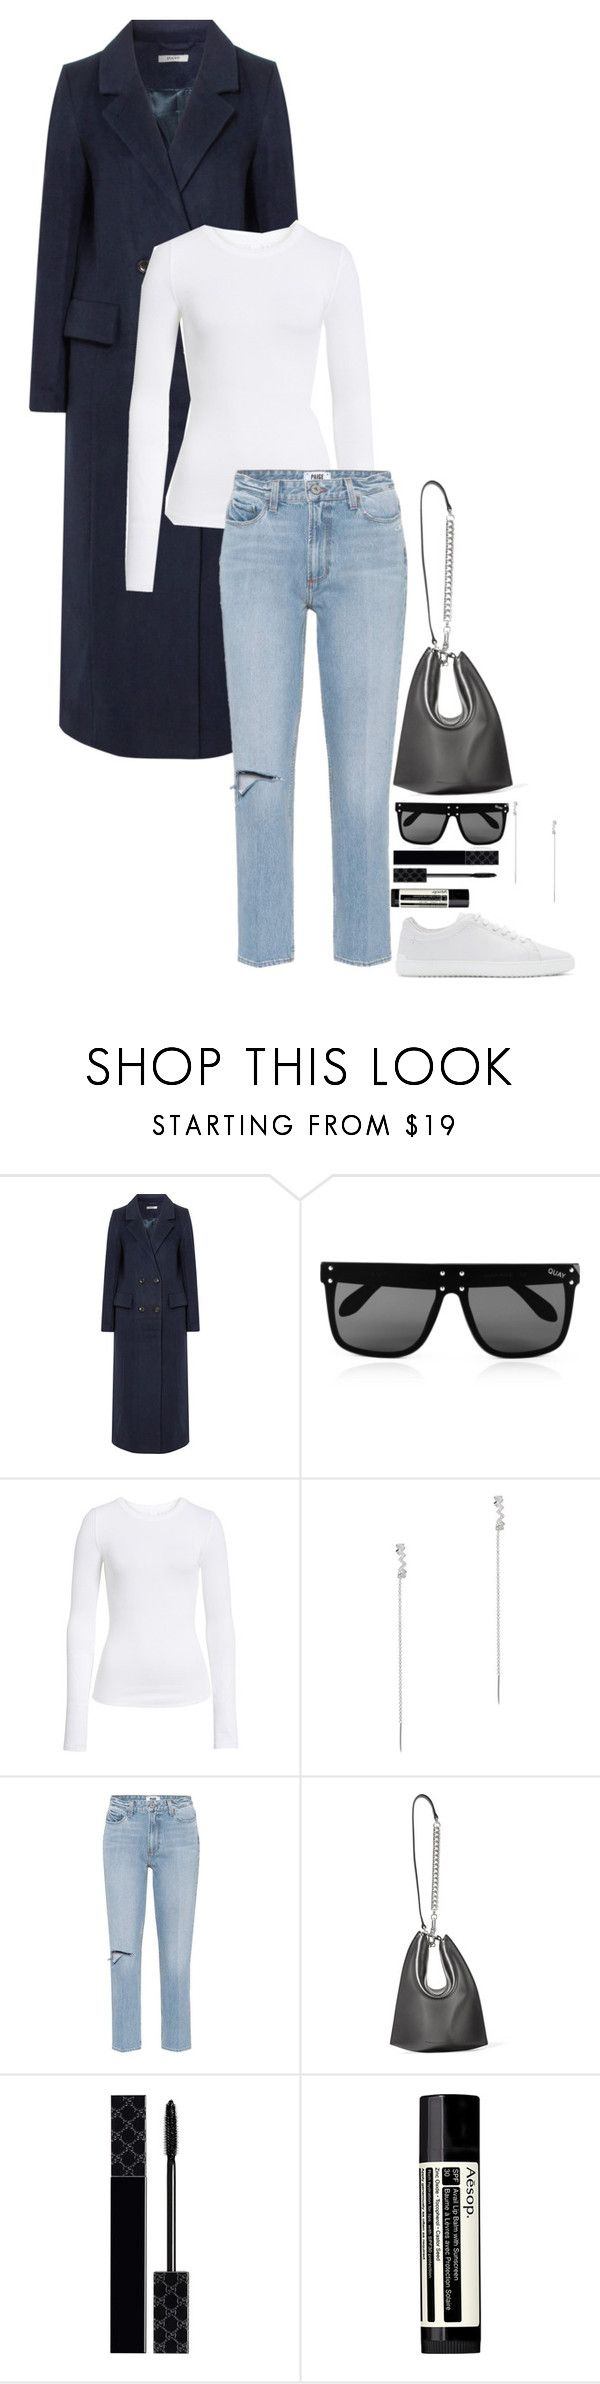 """🎶"" by beautyinl ❤ liked on Polyvore featuring Ganni, Quay, BP., APM Monaco, Paige Denim, Alexander Wang, Gucci, Aesop, rag & bone and StreetStyle"